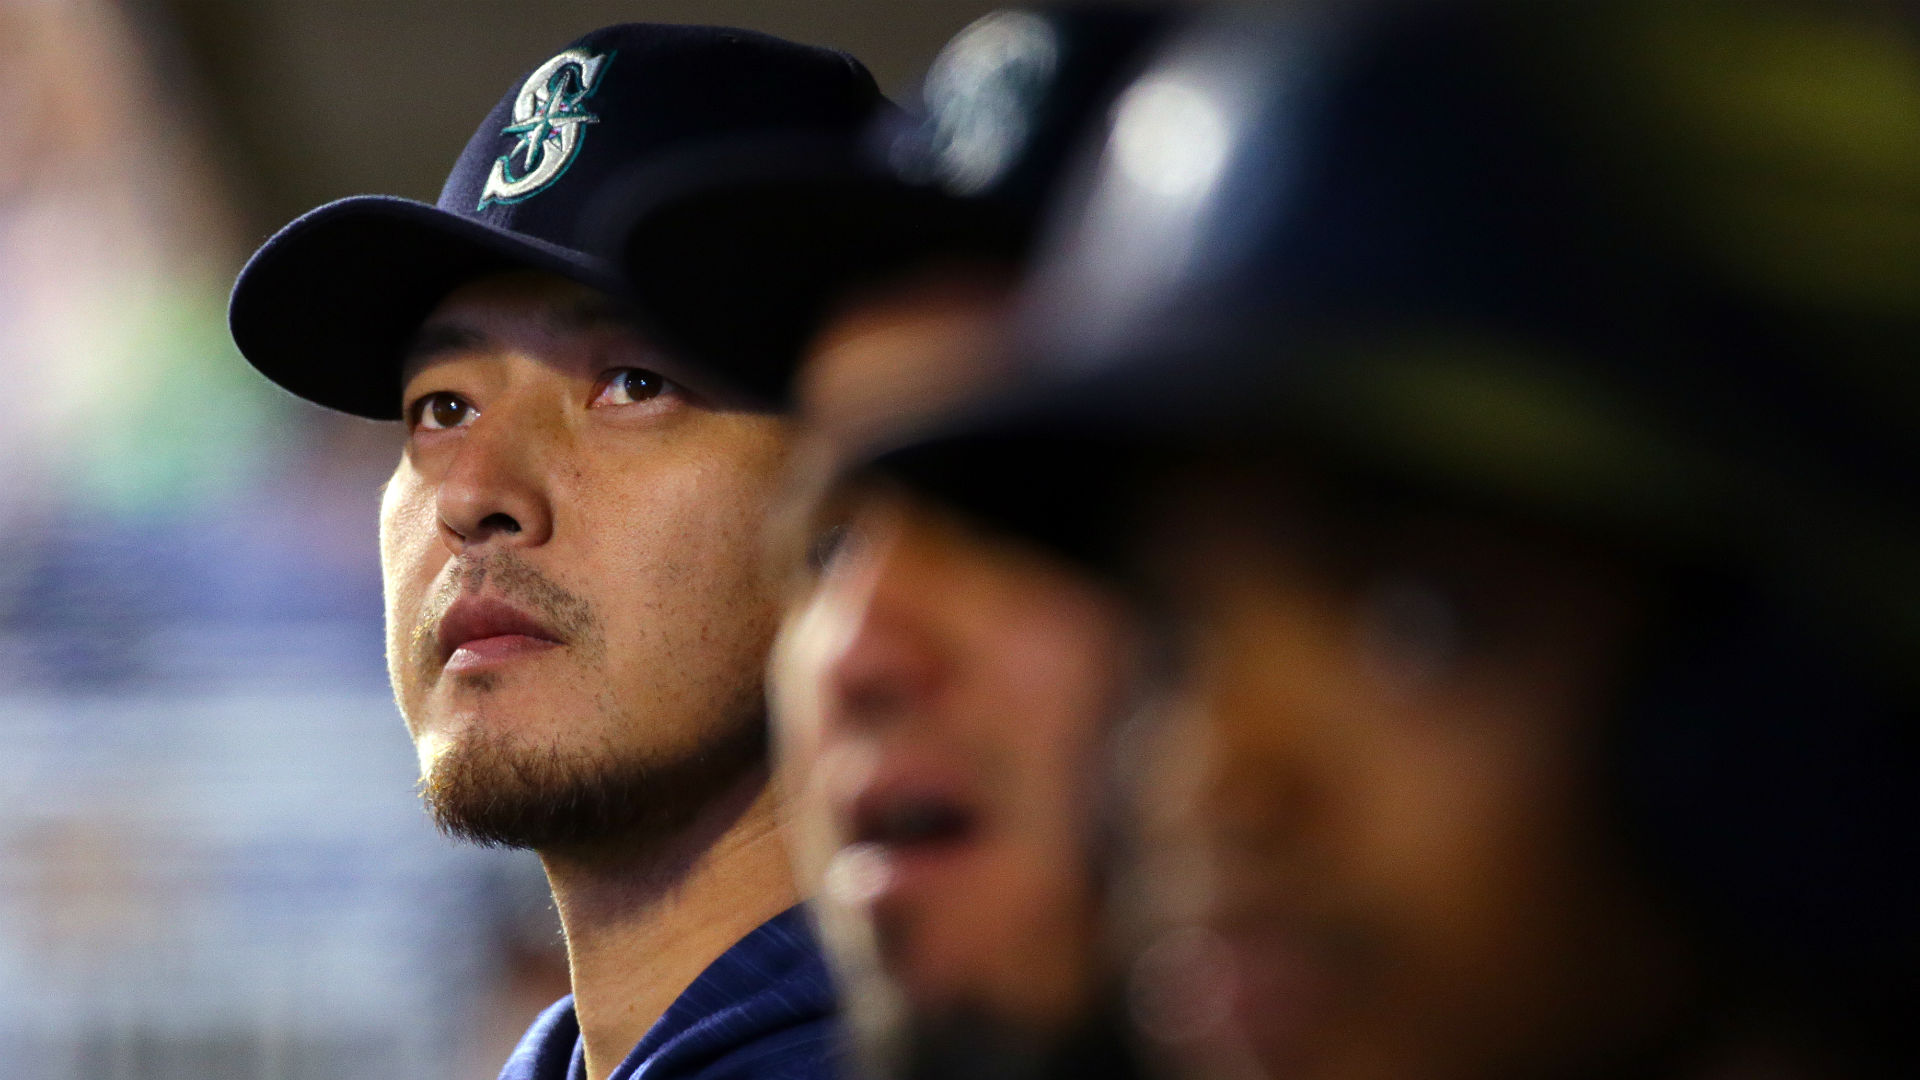 Mariners place Hisashi Iwakuma on 10-day DL